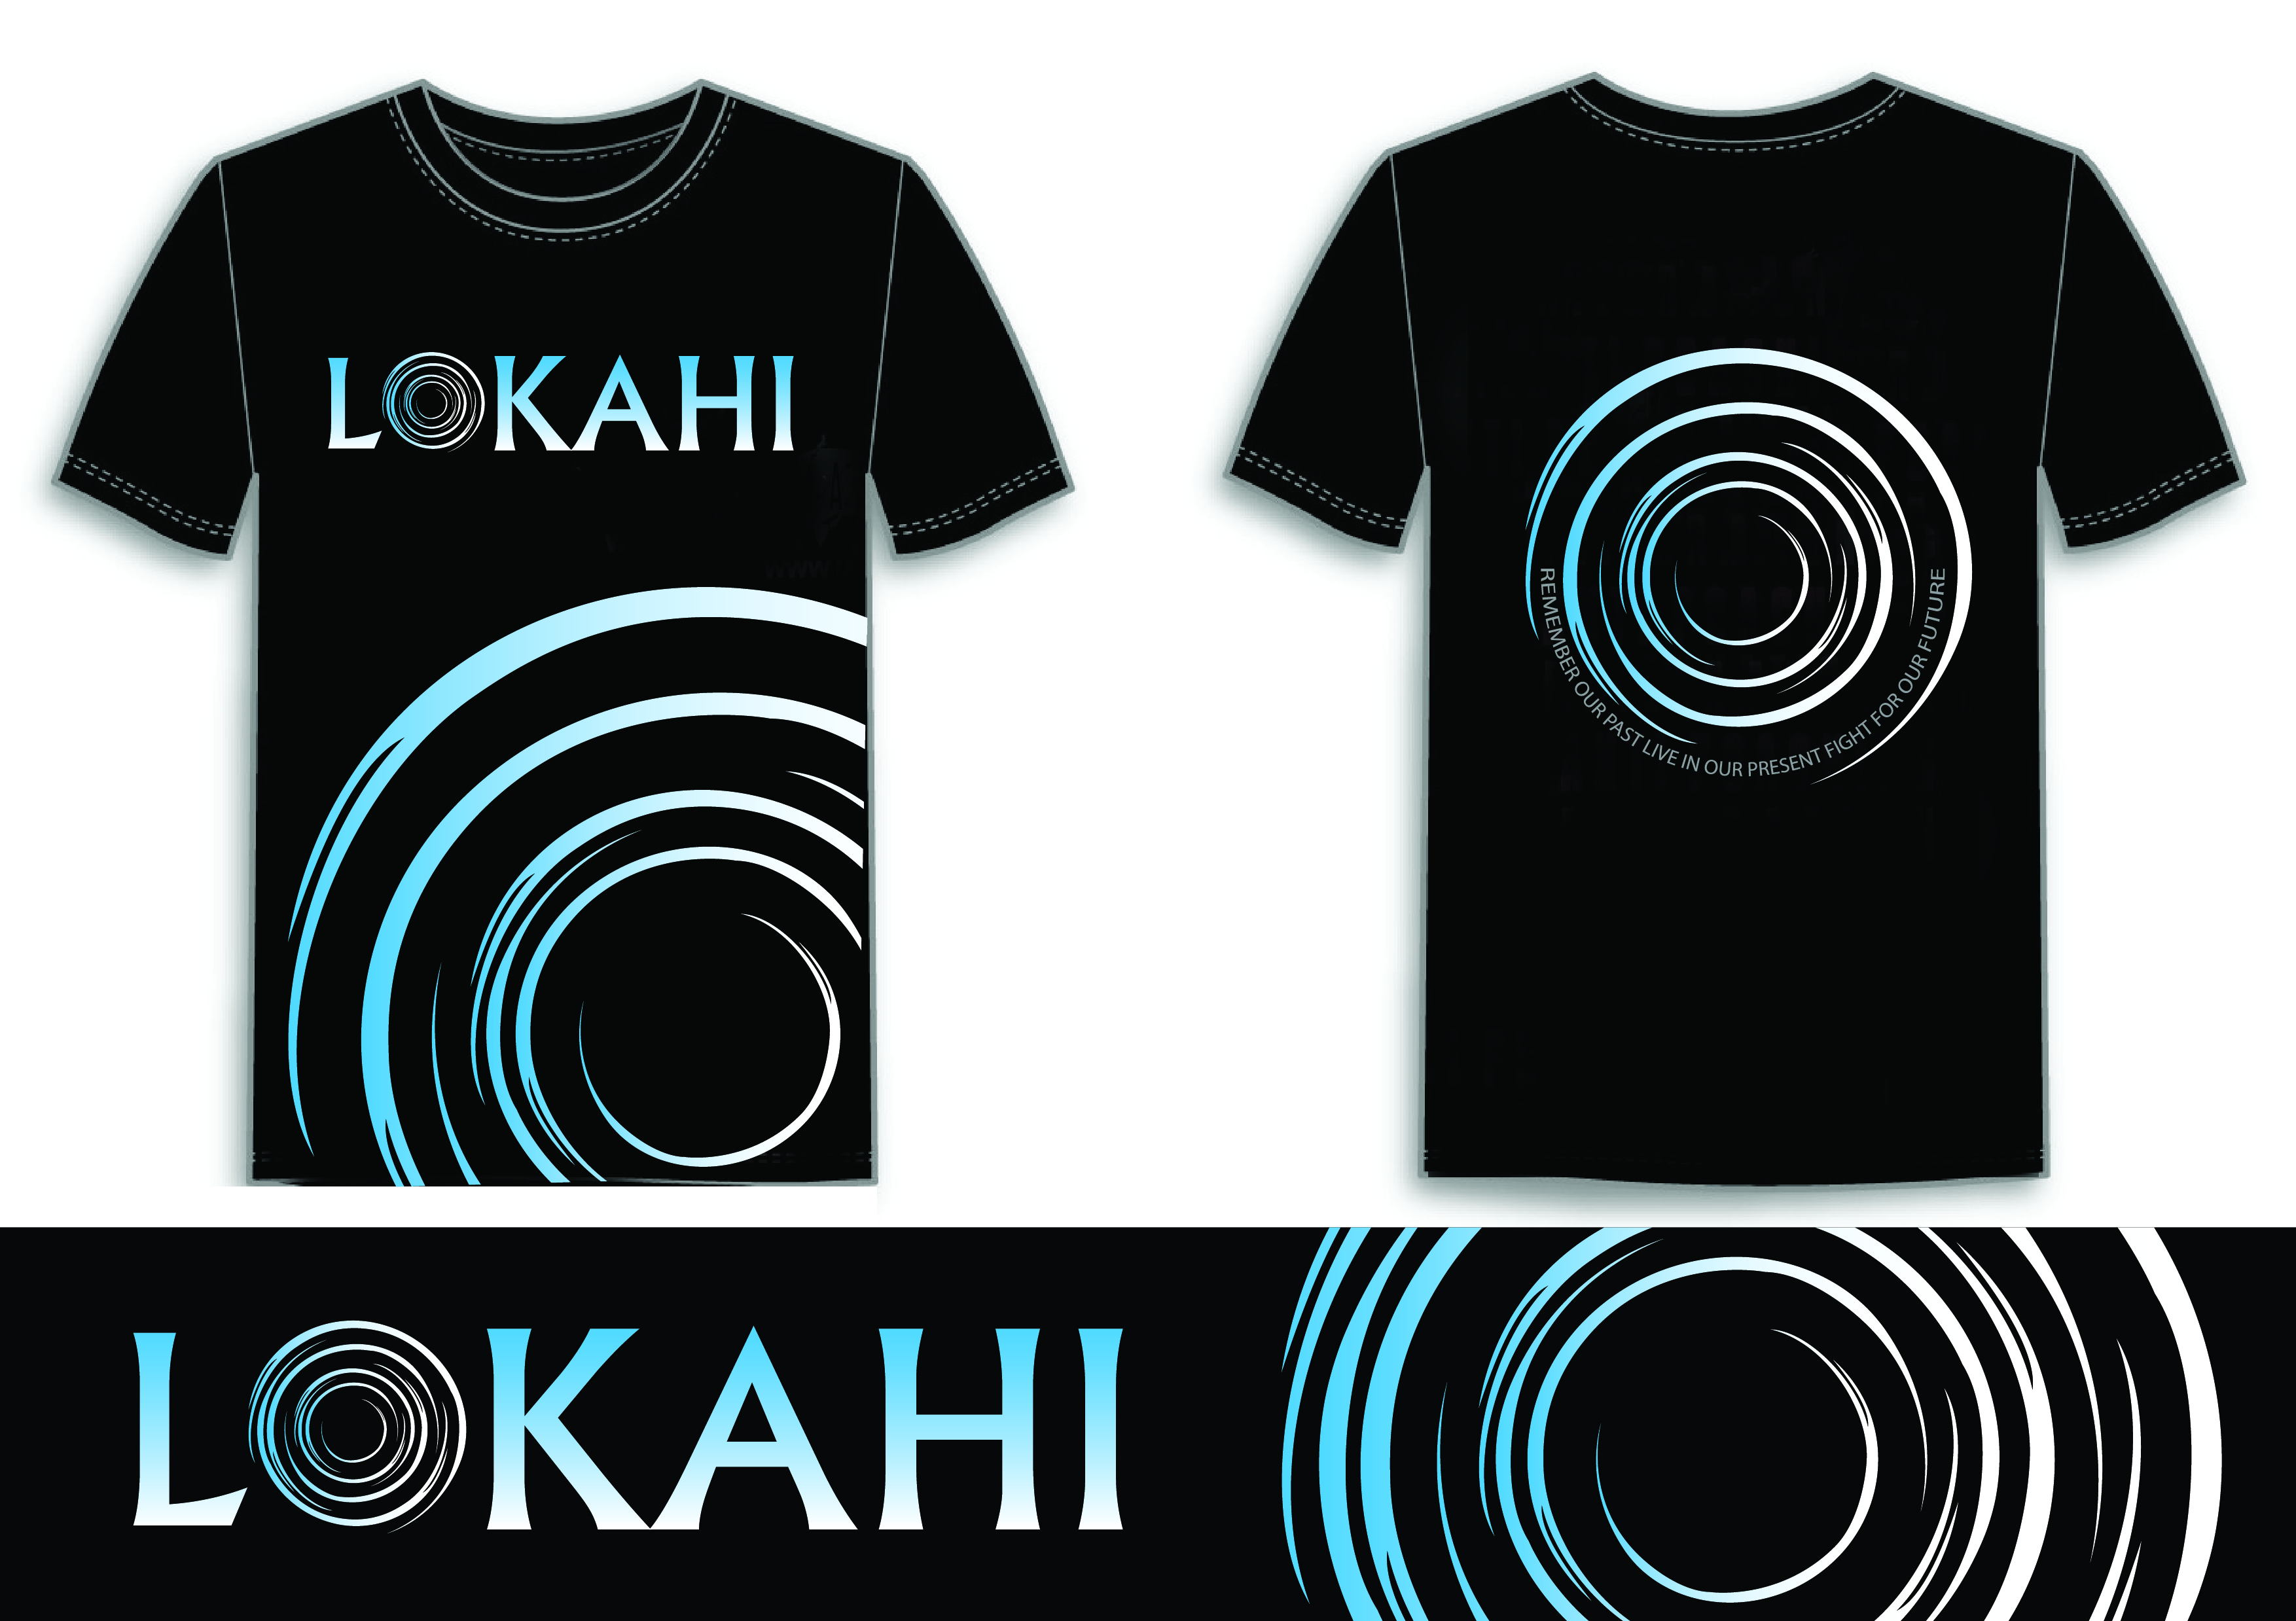 Clothing Design by 3draw - Entry No. 63 in the Clothing Design Contest Creative Clothing Design for LOKAHI designs.